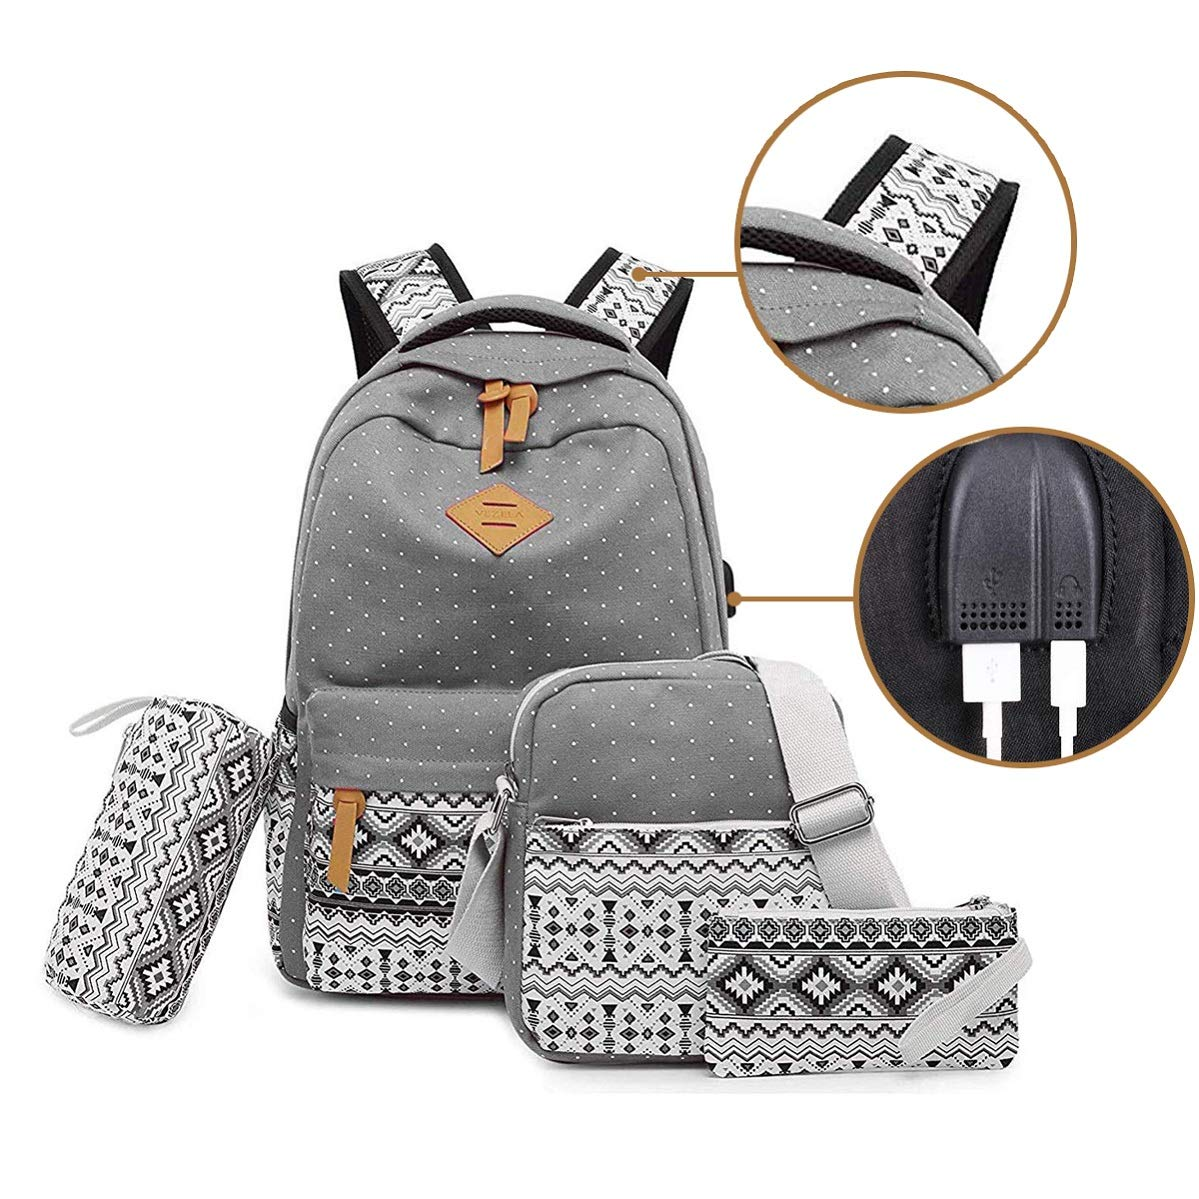 Vezela 4Pc Combo Of Laptop Bag With Usb Charging Feature With Lunch Bag, Pencil Case & Pouch (Grey) product image